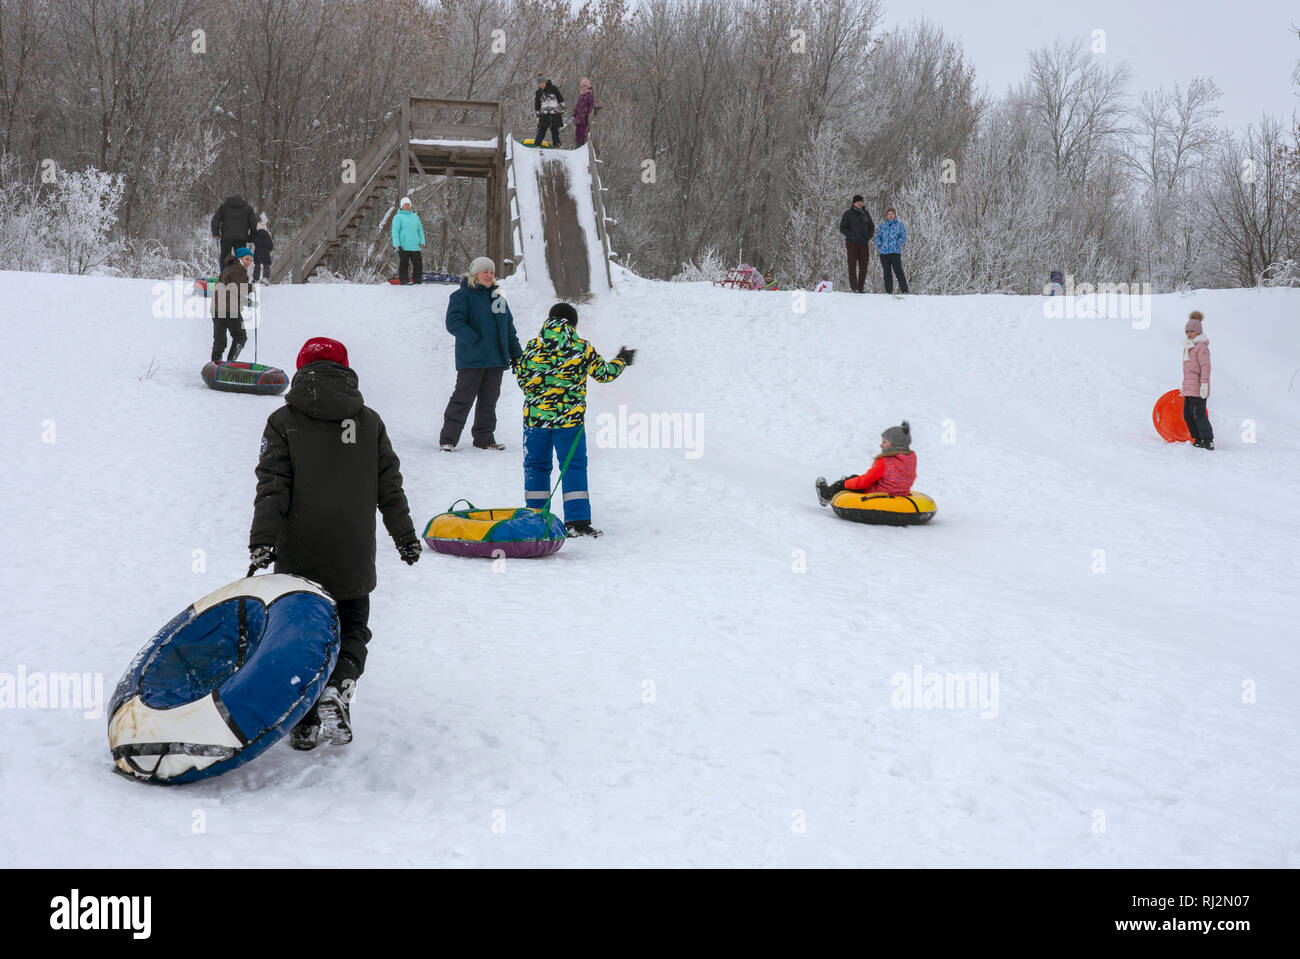 Children in colorful garments slide down the slide on inflatable rings - Stock Image